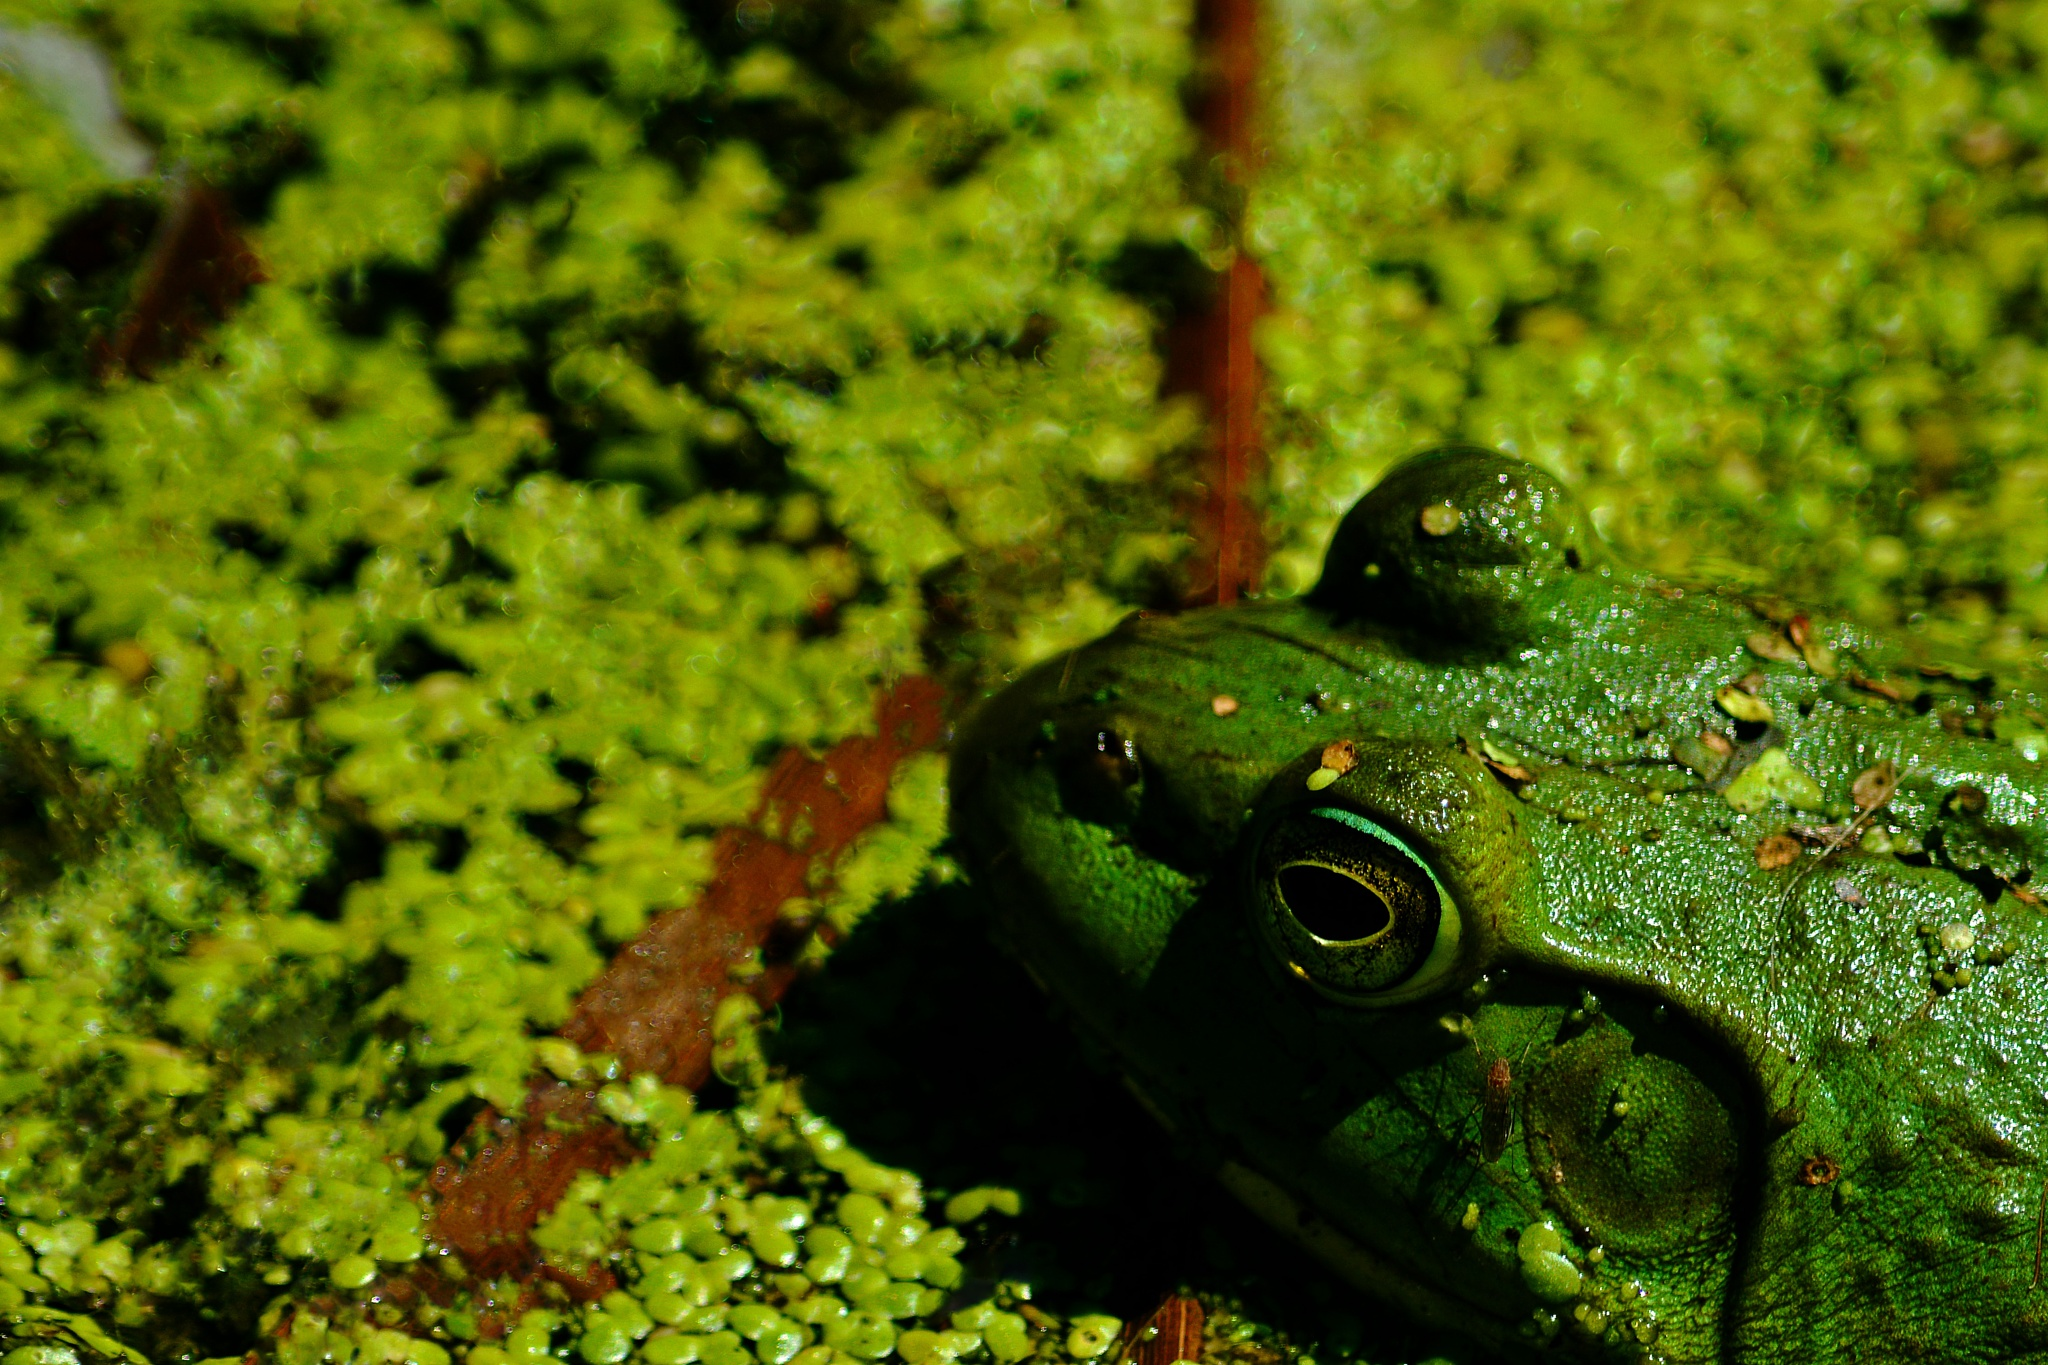 Frog in camouflage by William C. Burton